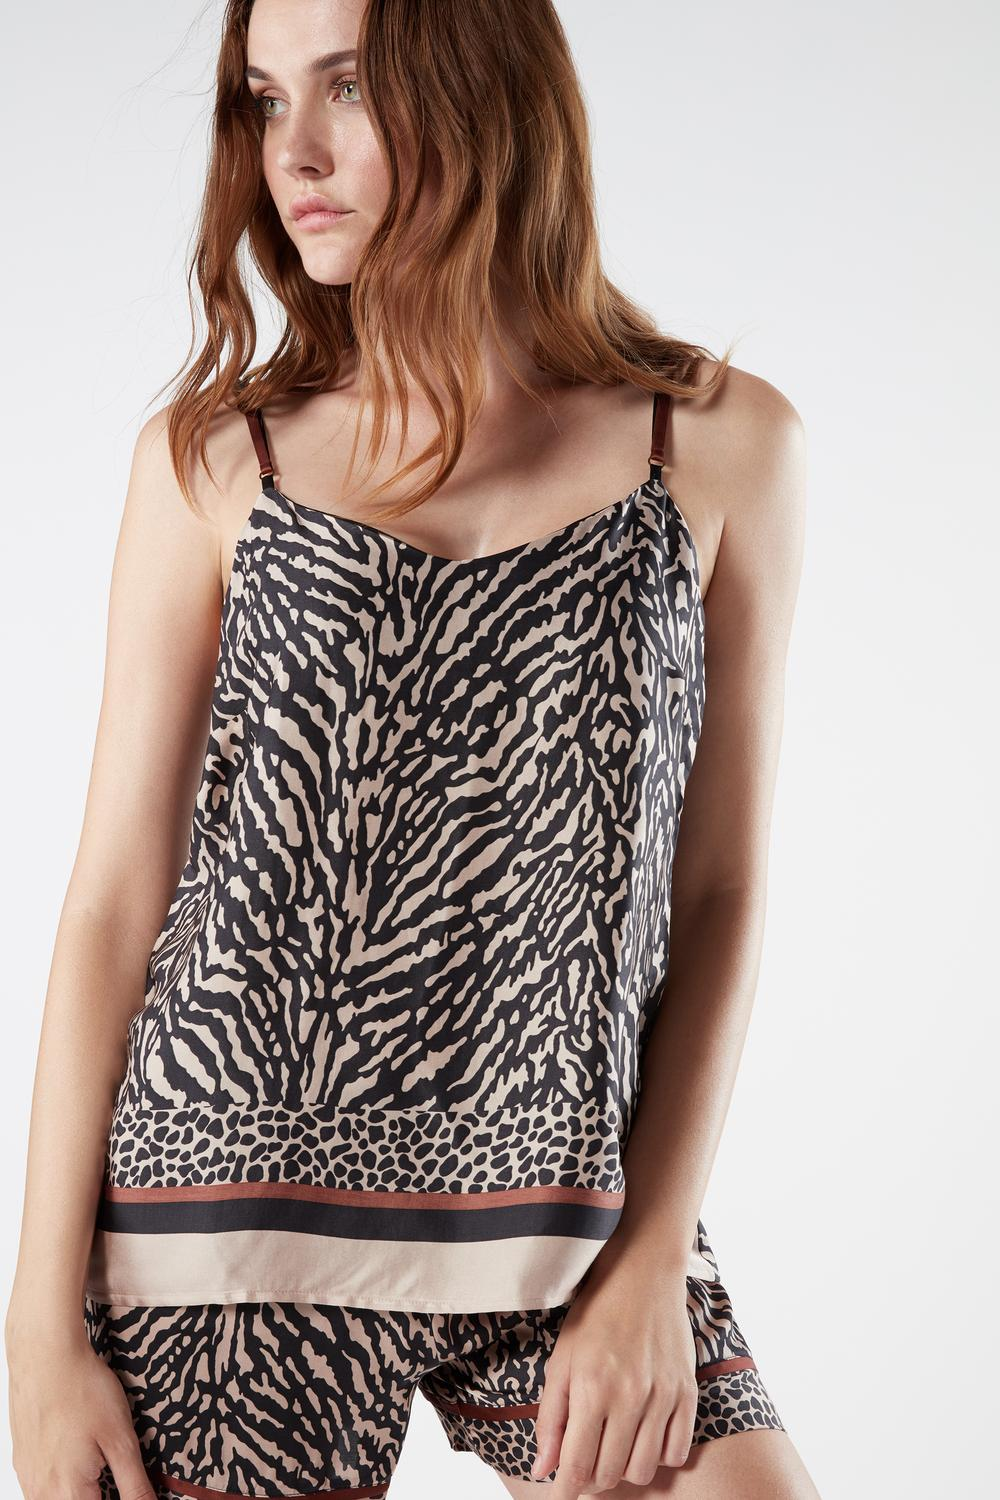 Zebra Stripes Top aus Viskosesatin